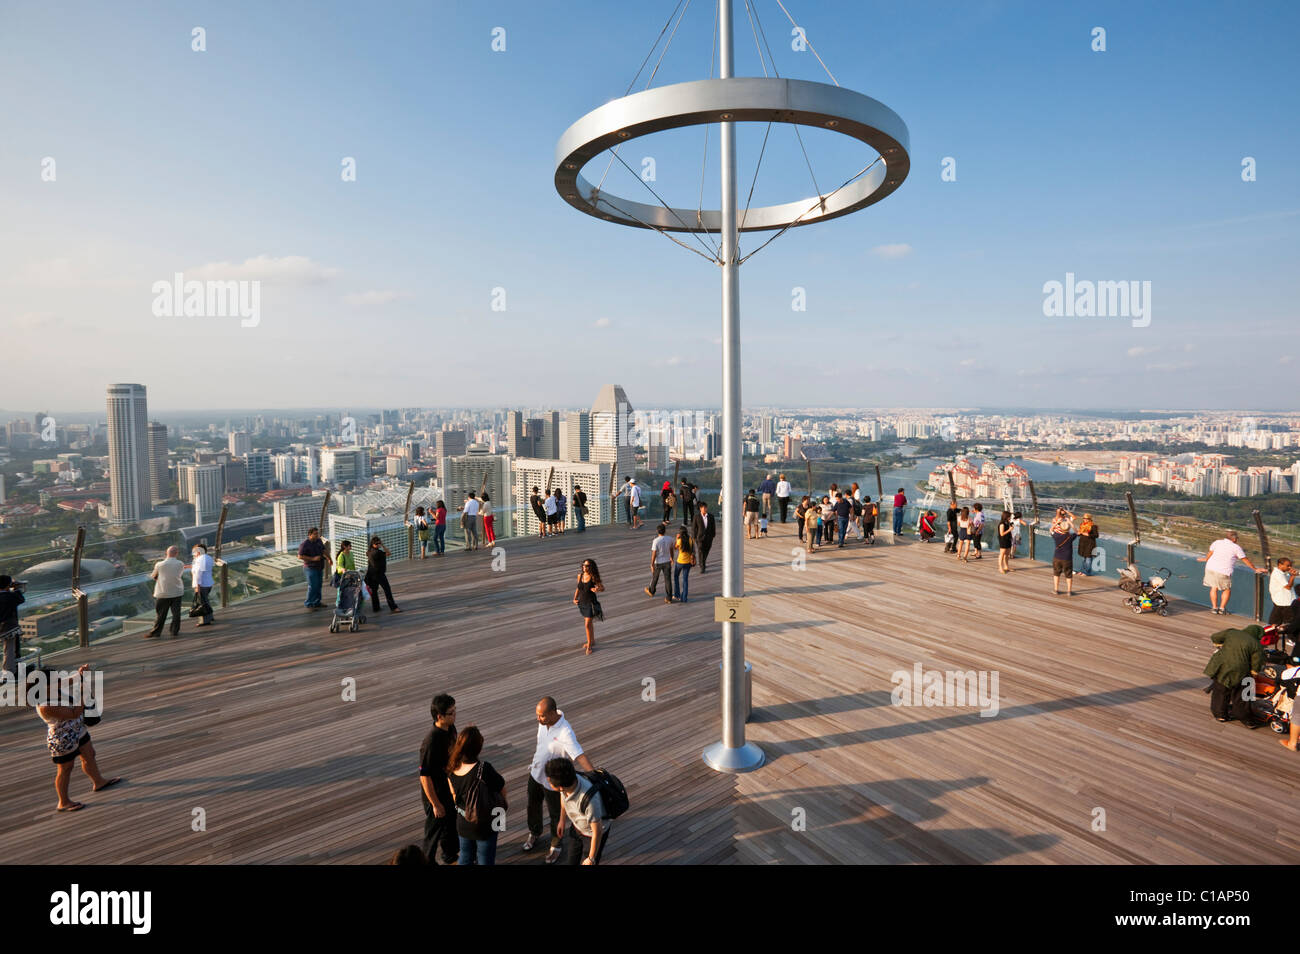 Visitors on the observation deck of the Marina Bay Sands SkyPark.  Marina Bay, Singapore - Stock Image